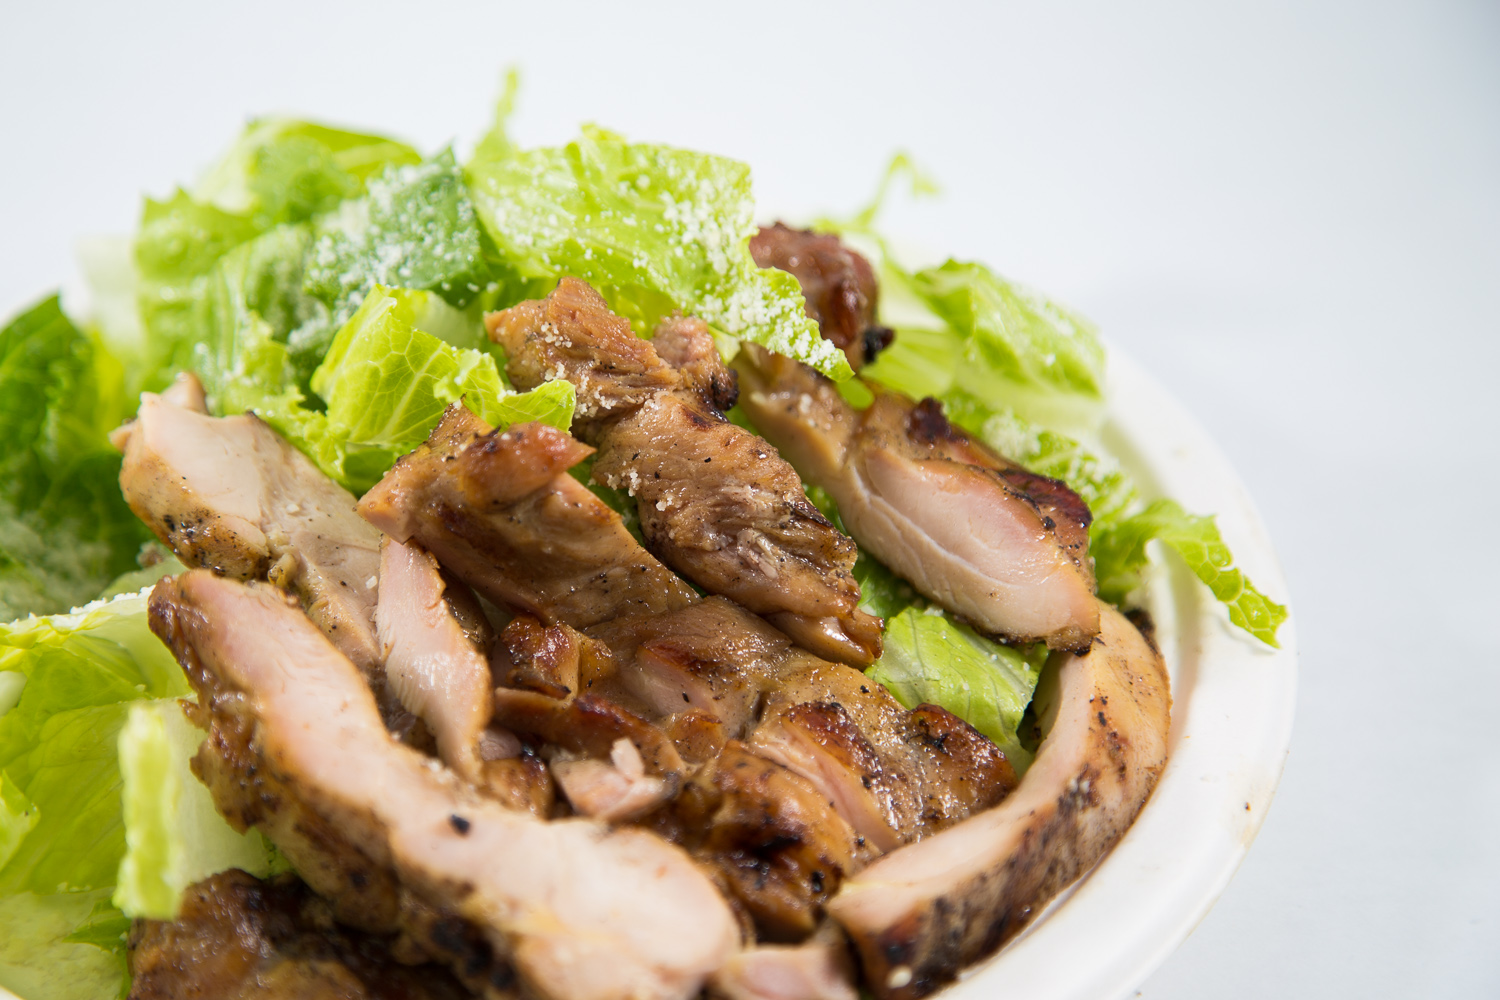 Blackened-Chicken-Caesar-Salad_20140315.jpg